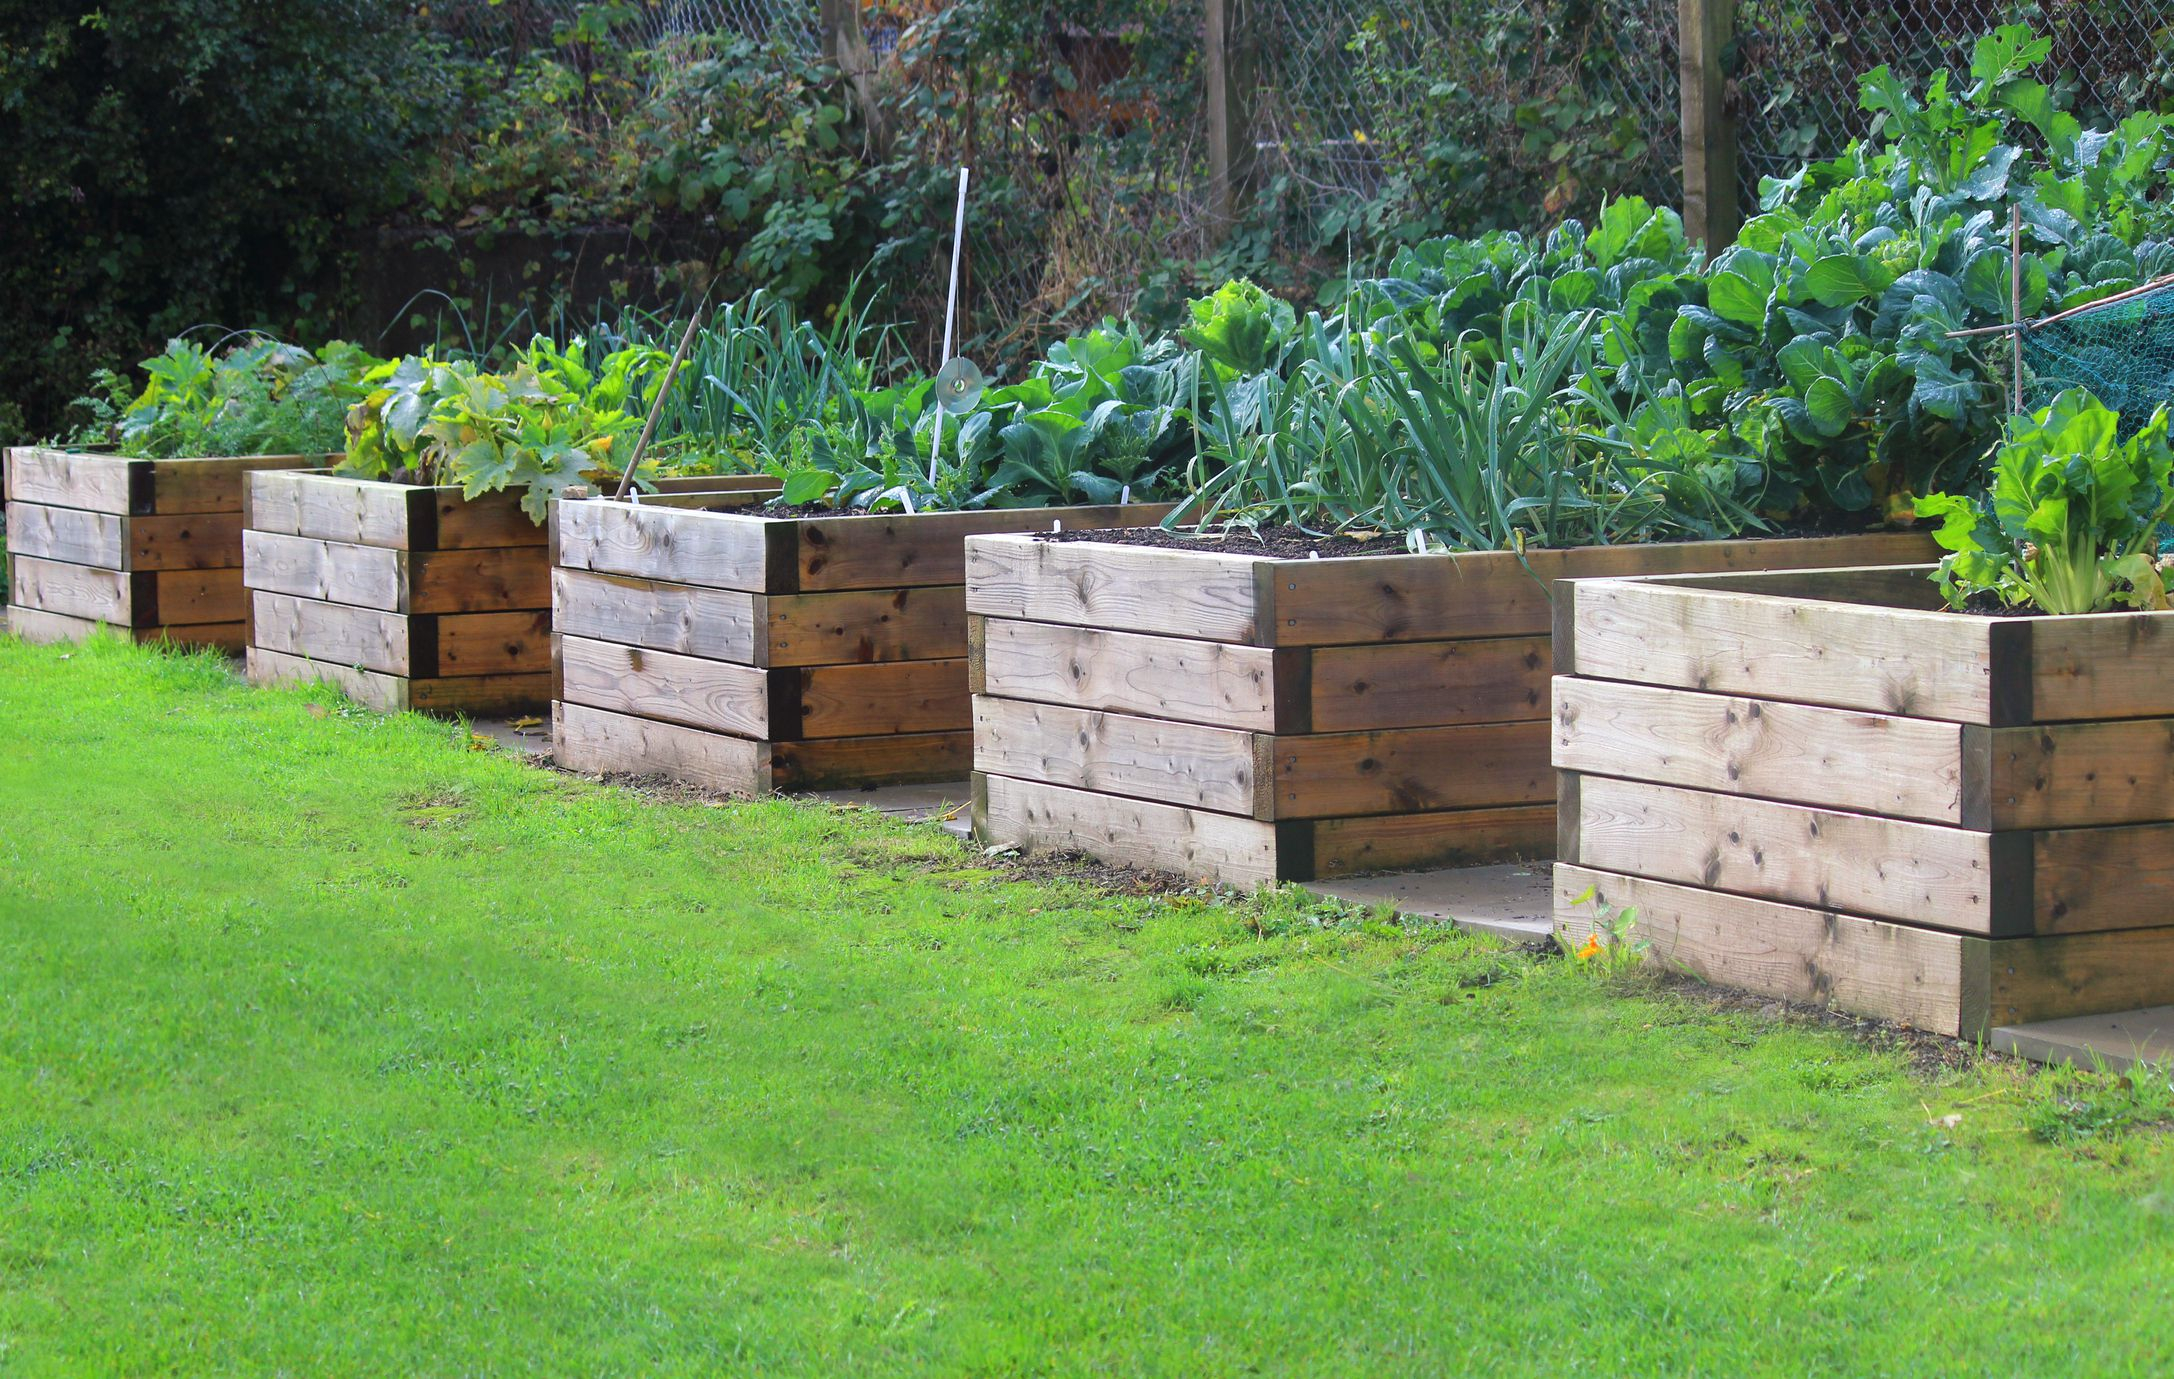 How To Build A Raised Garden Bed Diy Raised Bed Instructions in 13 Clever Initiatives of How to Make Backyard Raised Garden Ideas